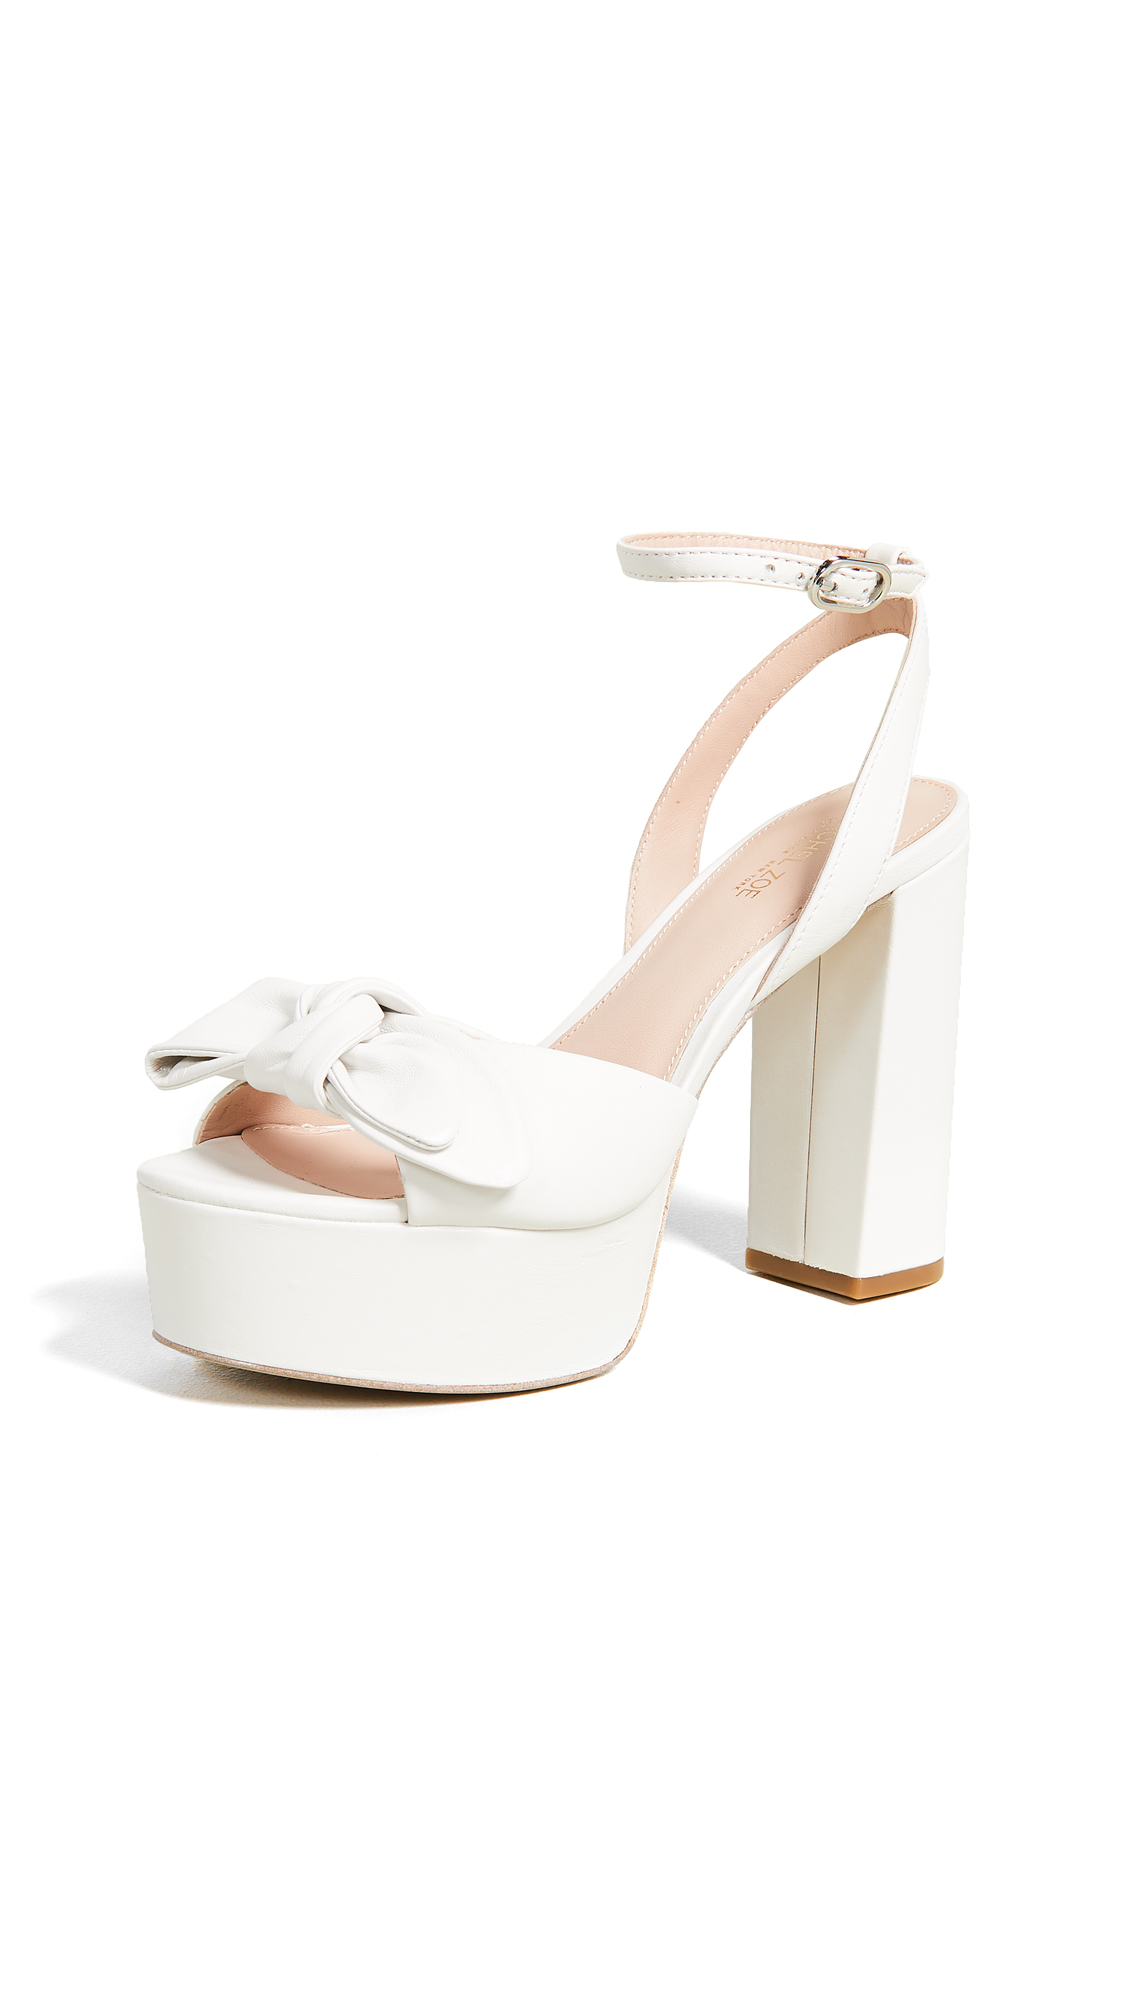 Rachel Zoe Courtney Platform Sandals - White